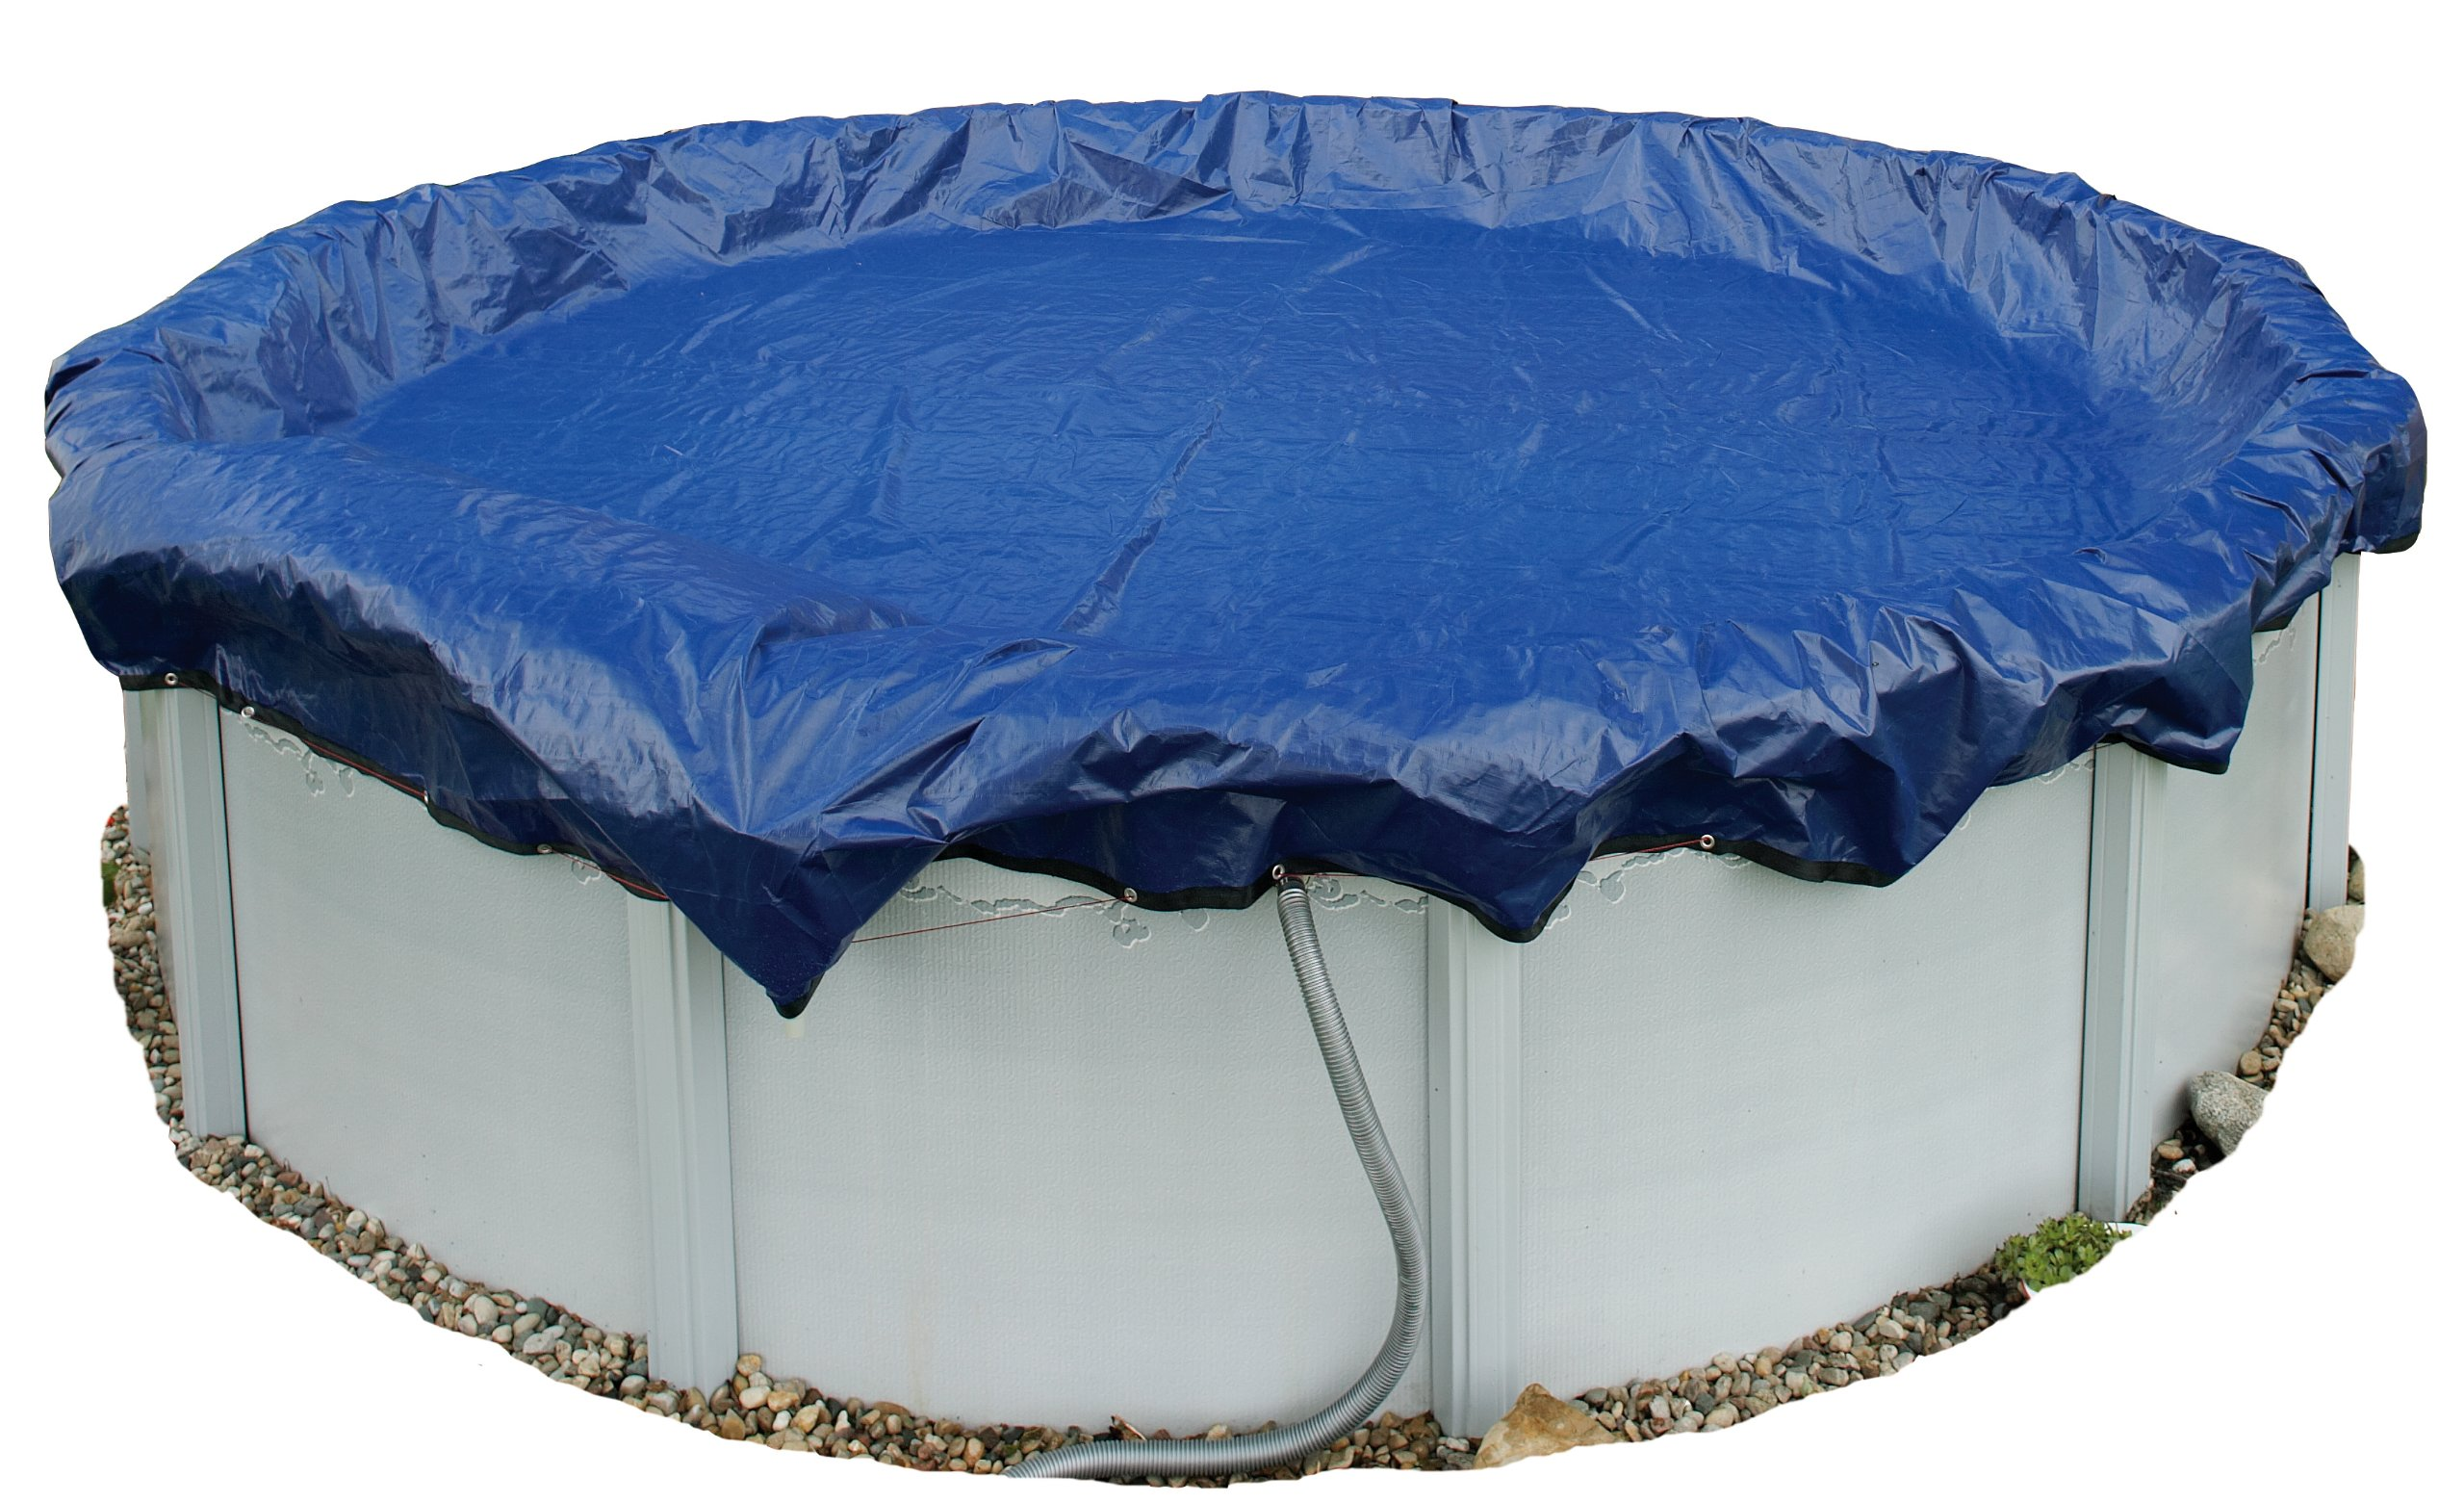 Blue Wave Gold 15-Year 24-ft Round Above Ground Pool Winter Cover by Blue Wave